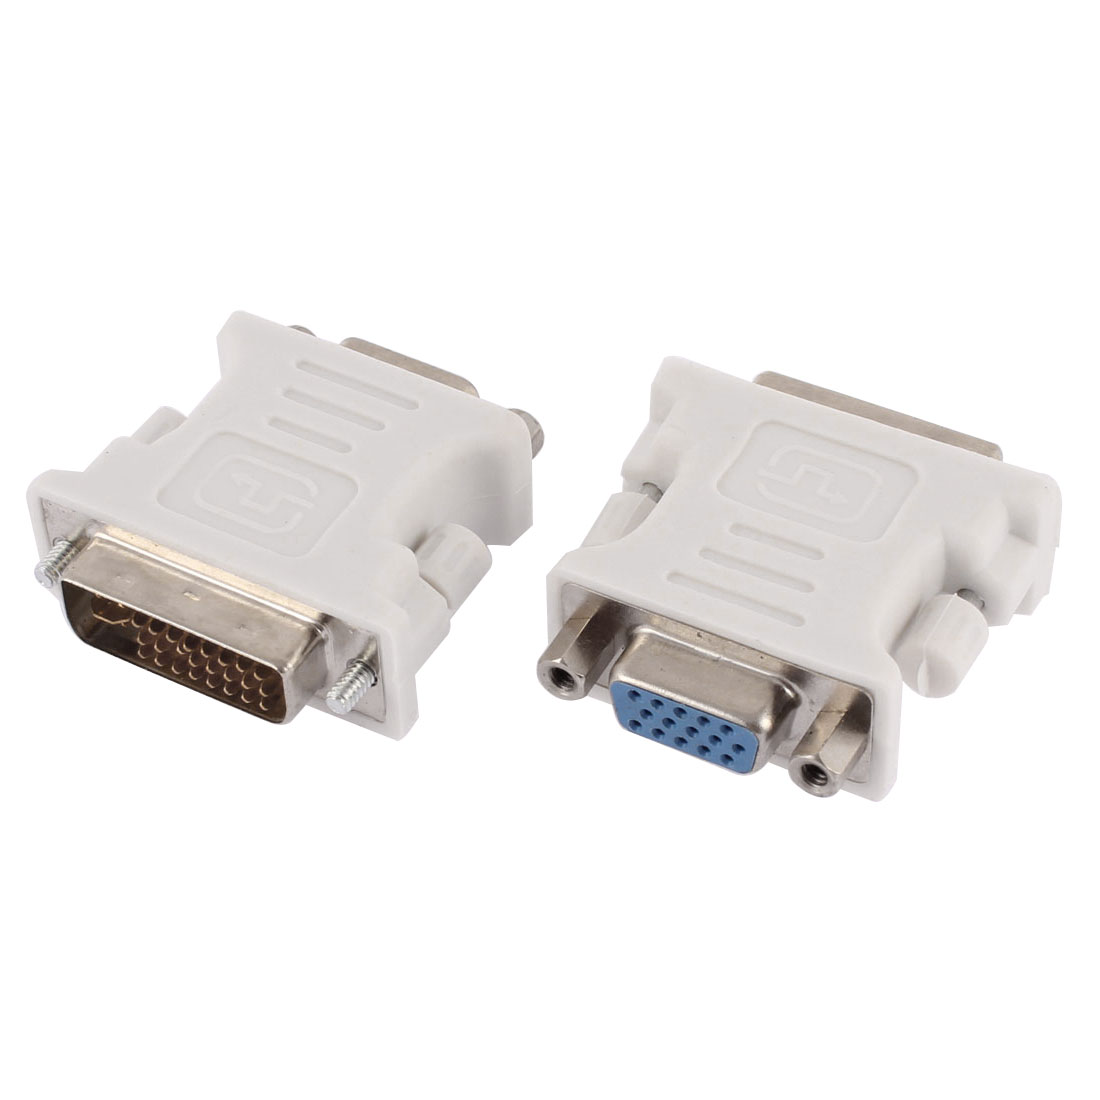 PC Computer DVI-I 24+5 Pin Male to VGA 15Pin Female Cable Adapter Converter Connector 2pcs